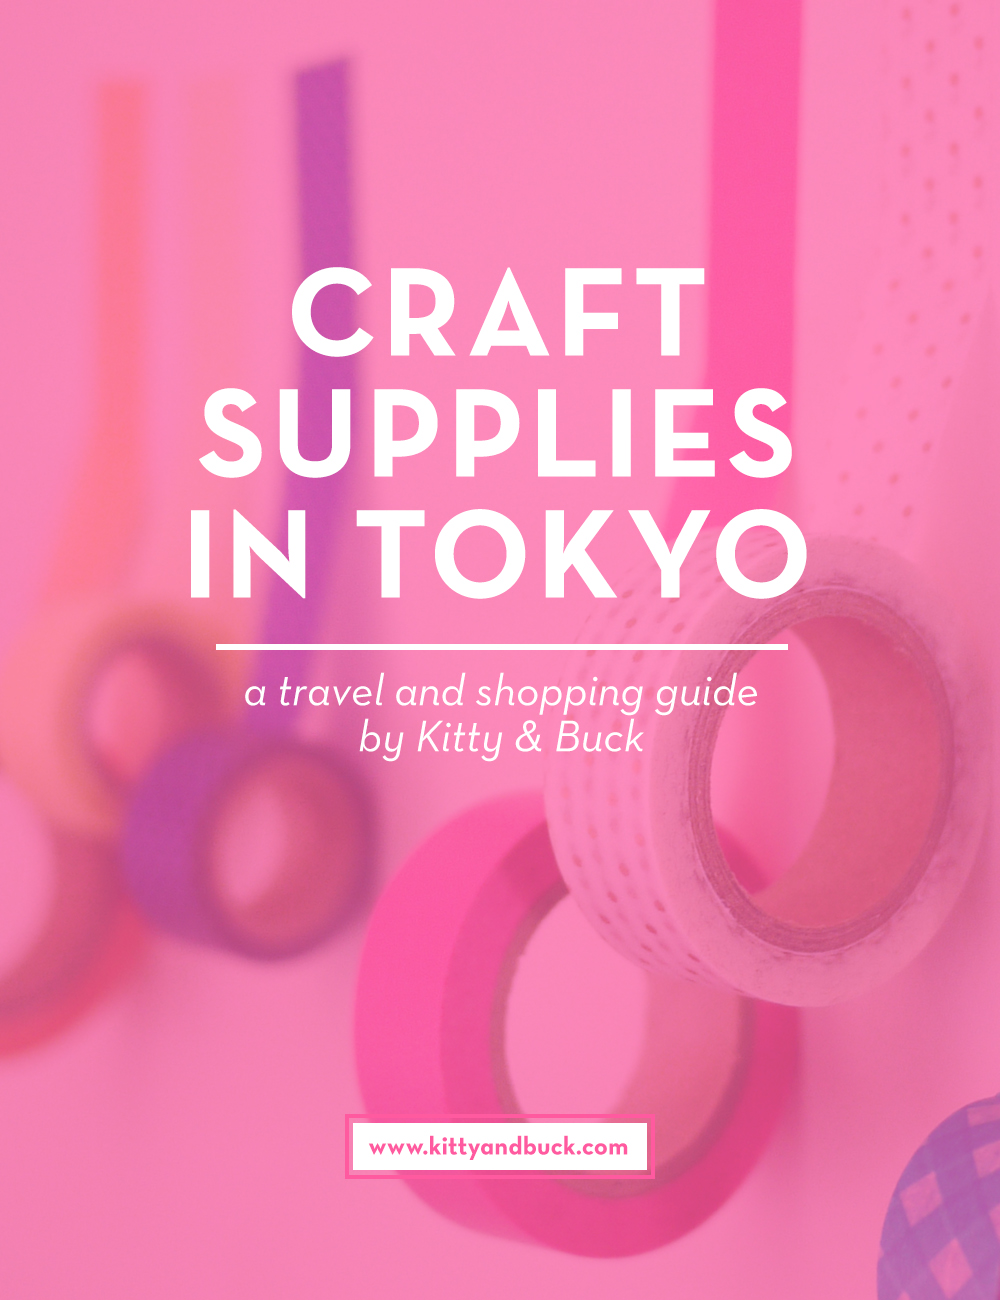 Craft Supplies in Tokyo! Trying to find your way around Tokyo's craft and art supply stores can be super challenging! Check out this guide on the best places to visit for craft, fabric and kawaii stationery supplies with insider tips, addresses, and directions to make your next crafty visit to Tokyo hassle free and fun! | by Kitty & Buck